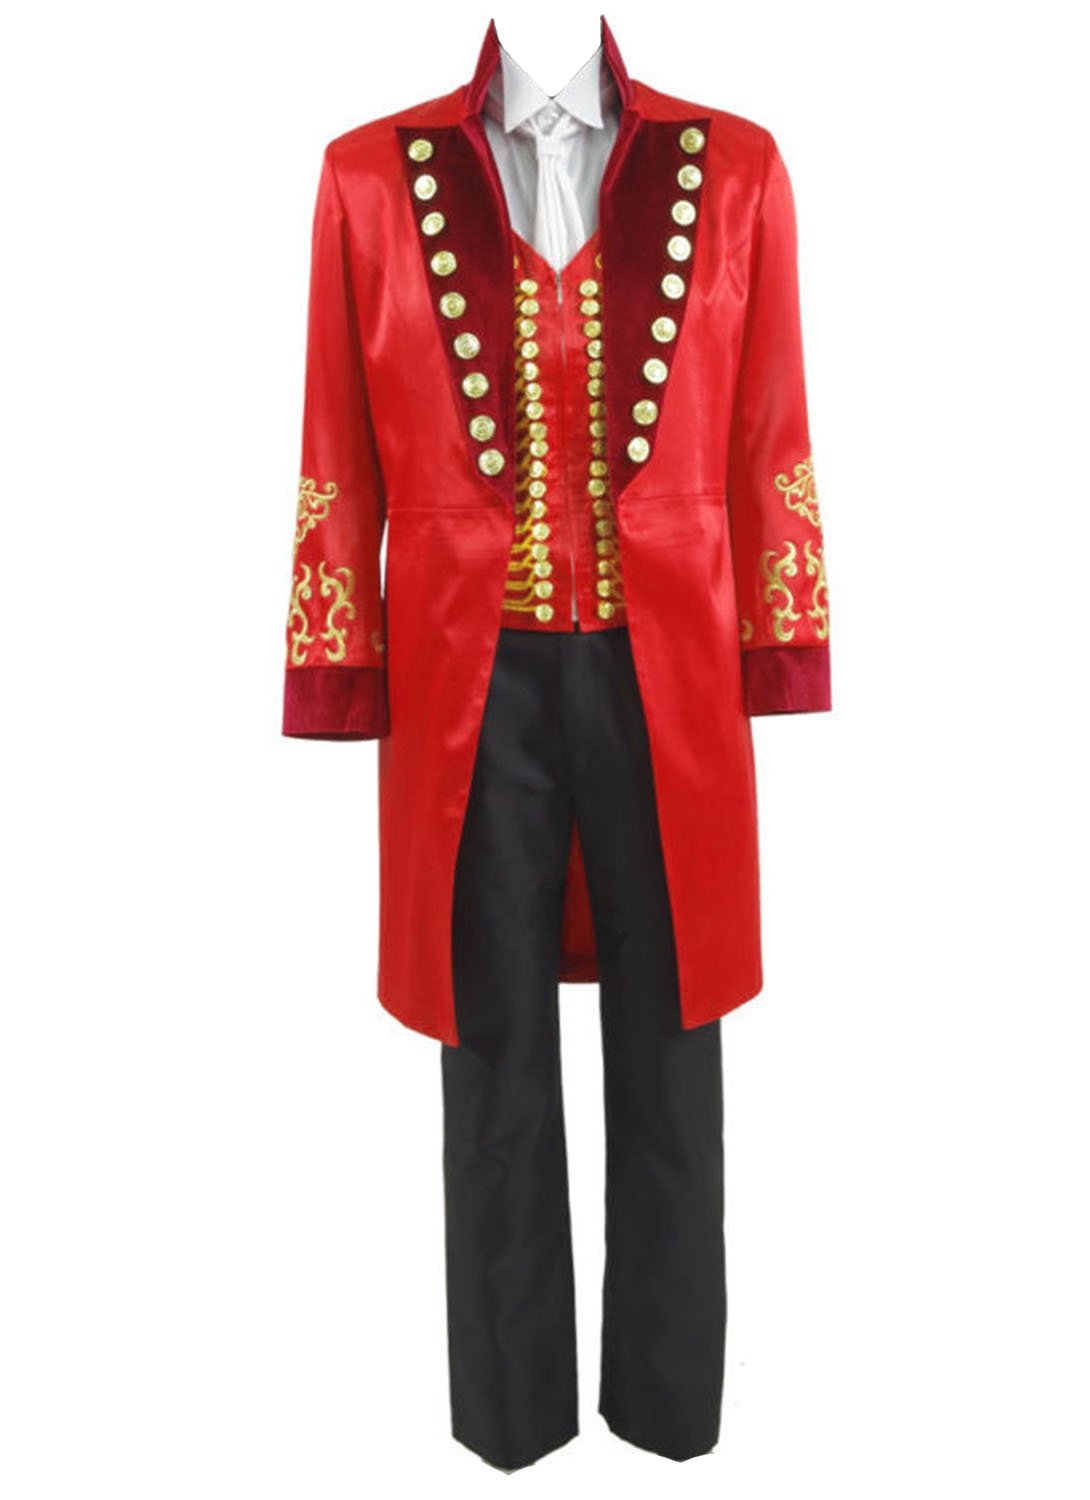 Greatest PT Barnum Cosplay Costume Performance Uniform Showman Party Suit (Custom-Made, Red)